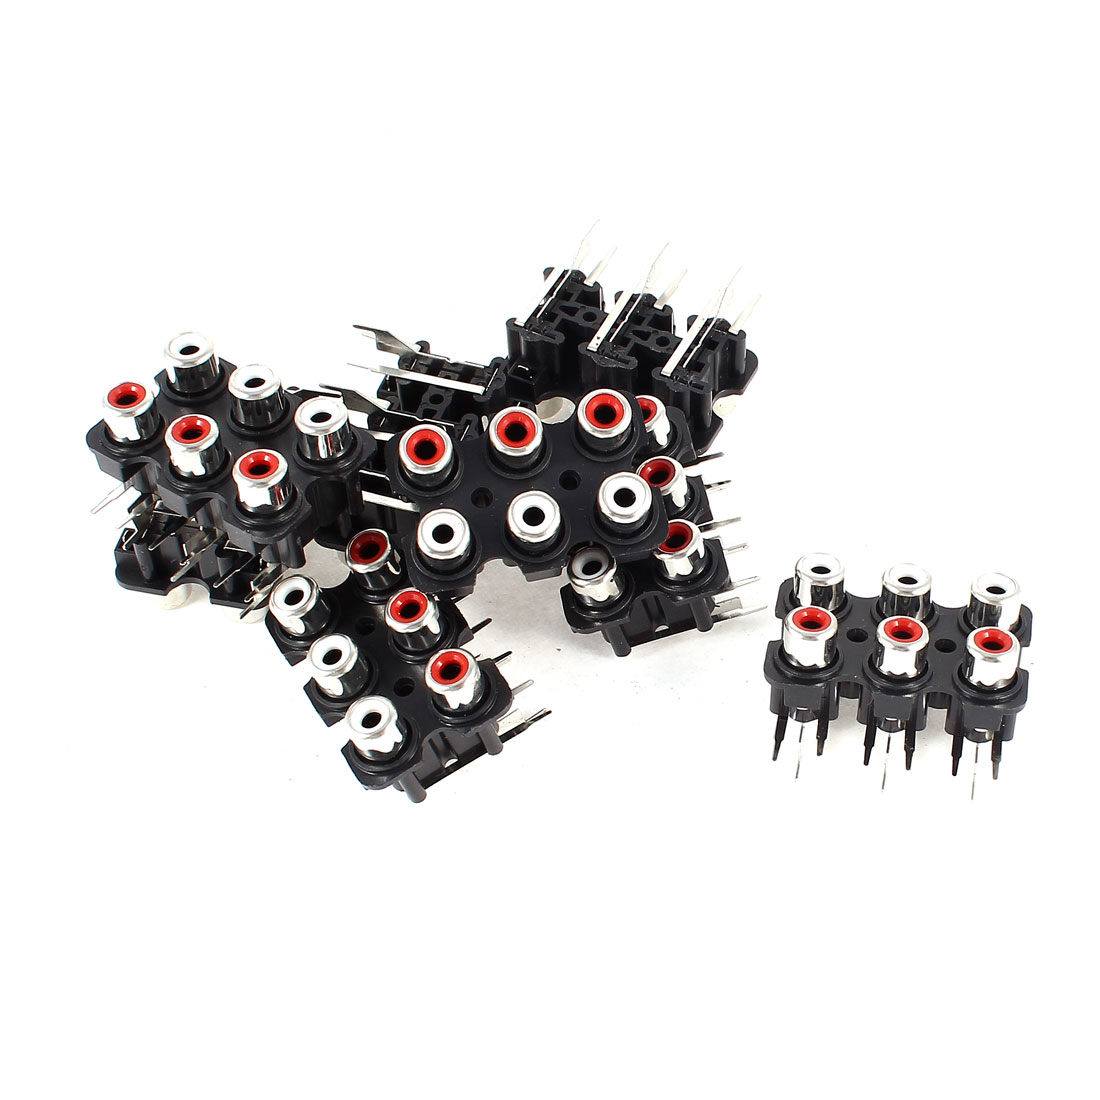 PCB Mount 6 Female RCA AV Concentric Socket Black Board 8 Pcs